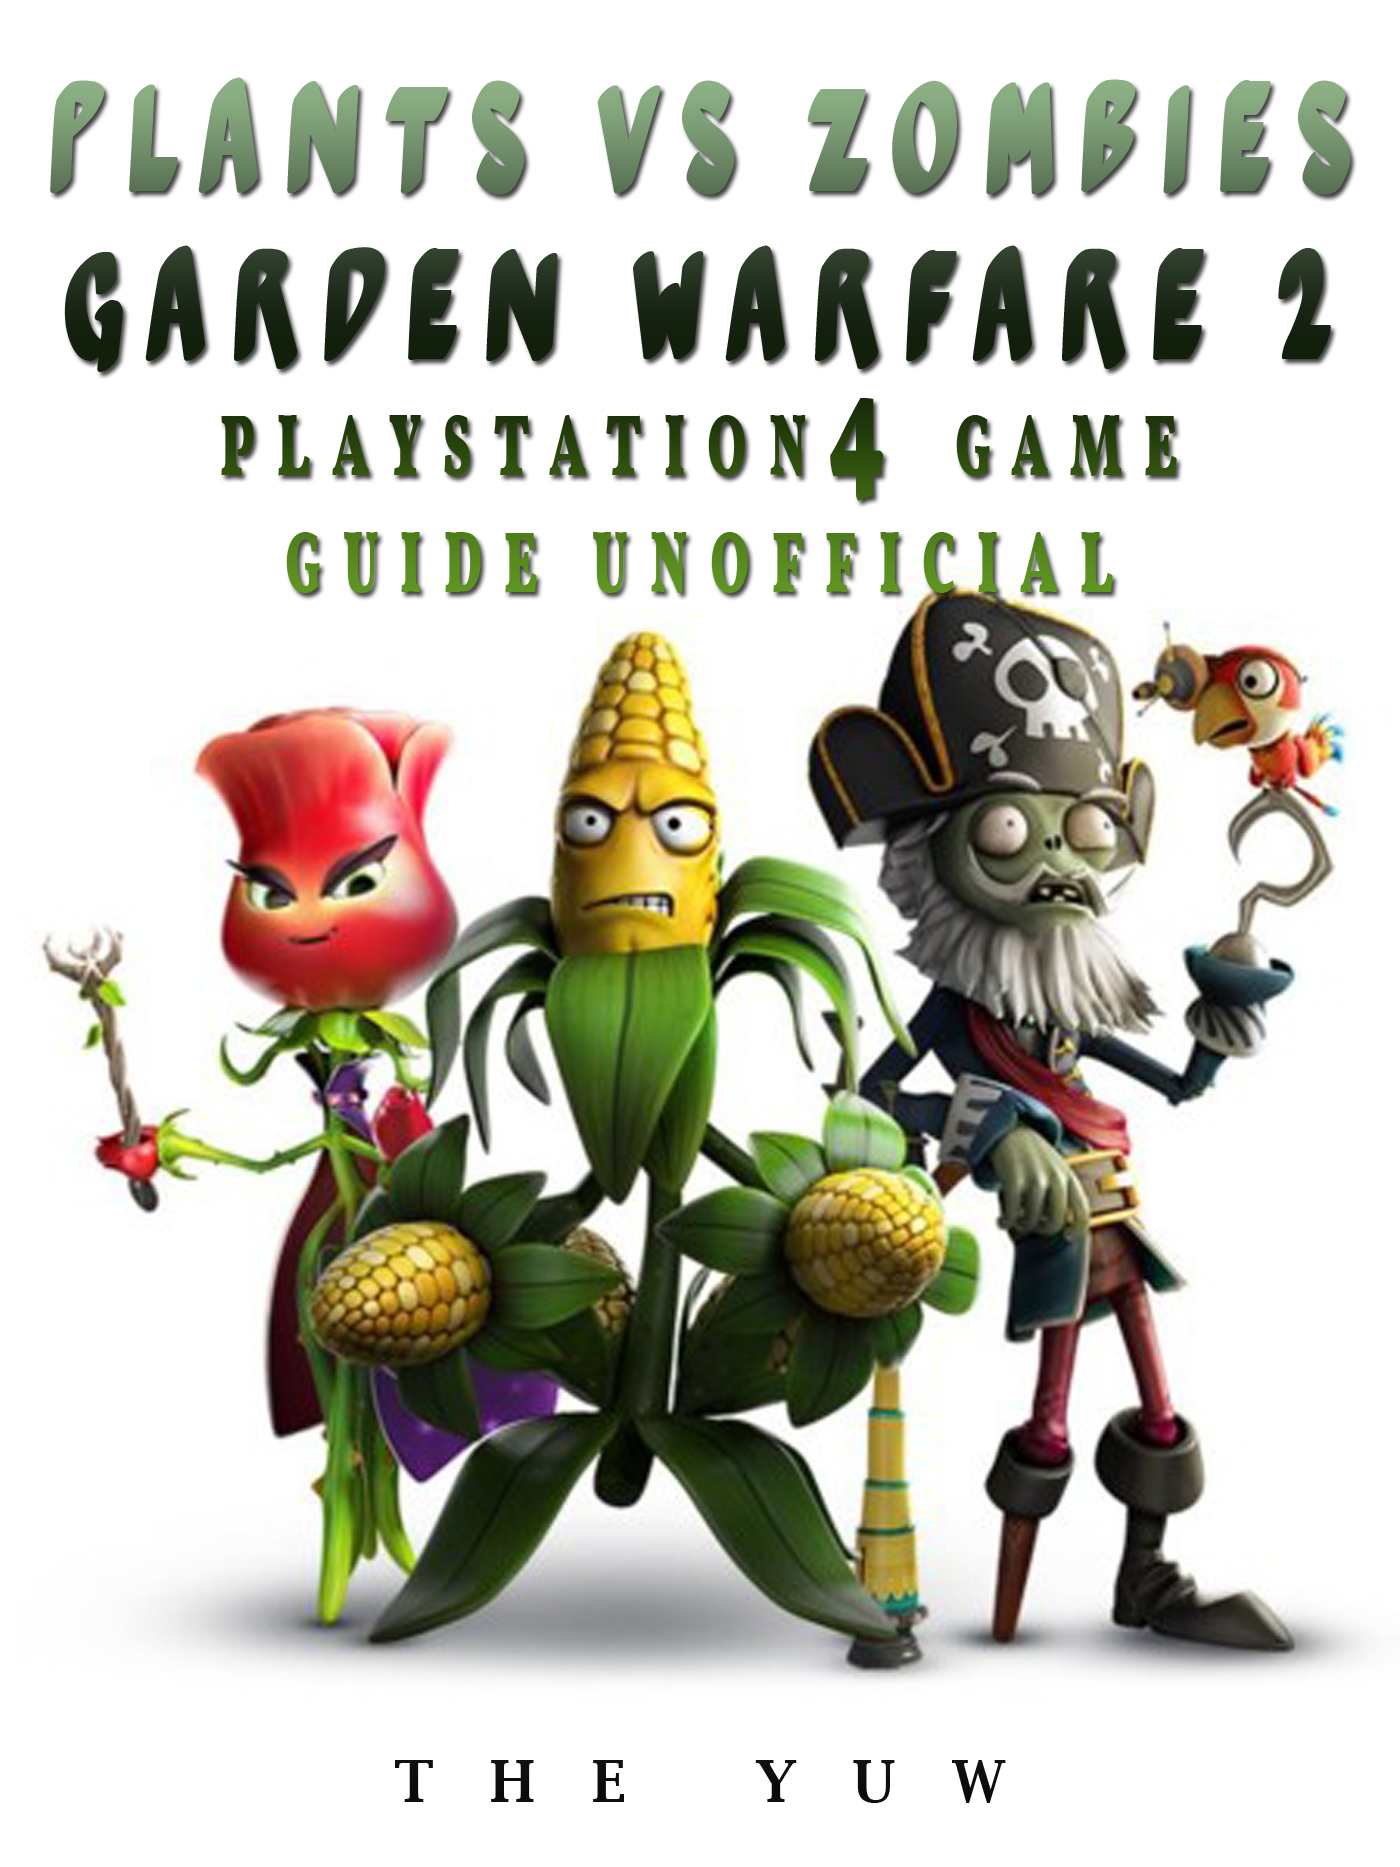 Plants Vs Zombies Garden Warfare 2 Playstation 4 Game Guide Unofficial By The Yuw